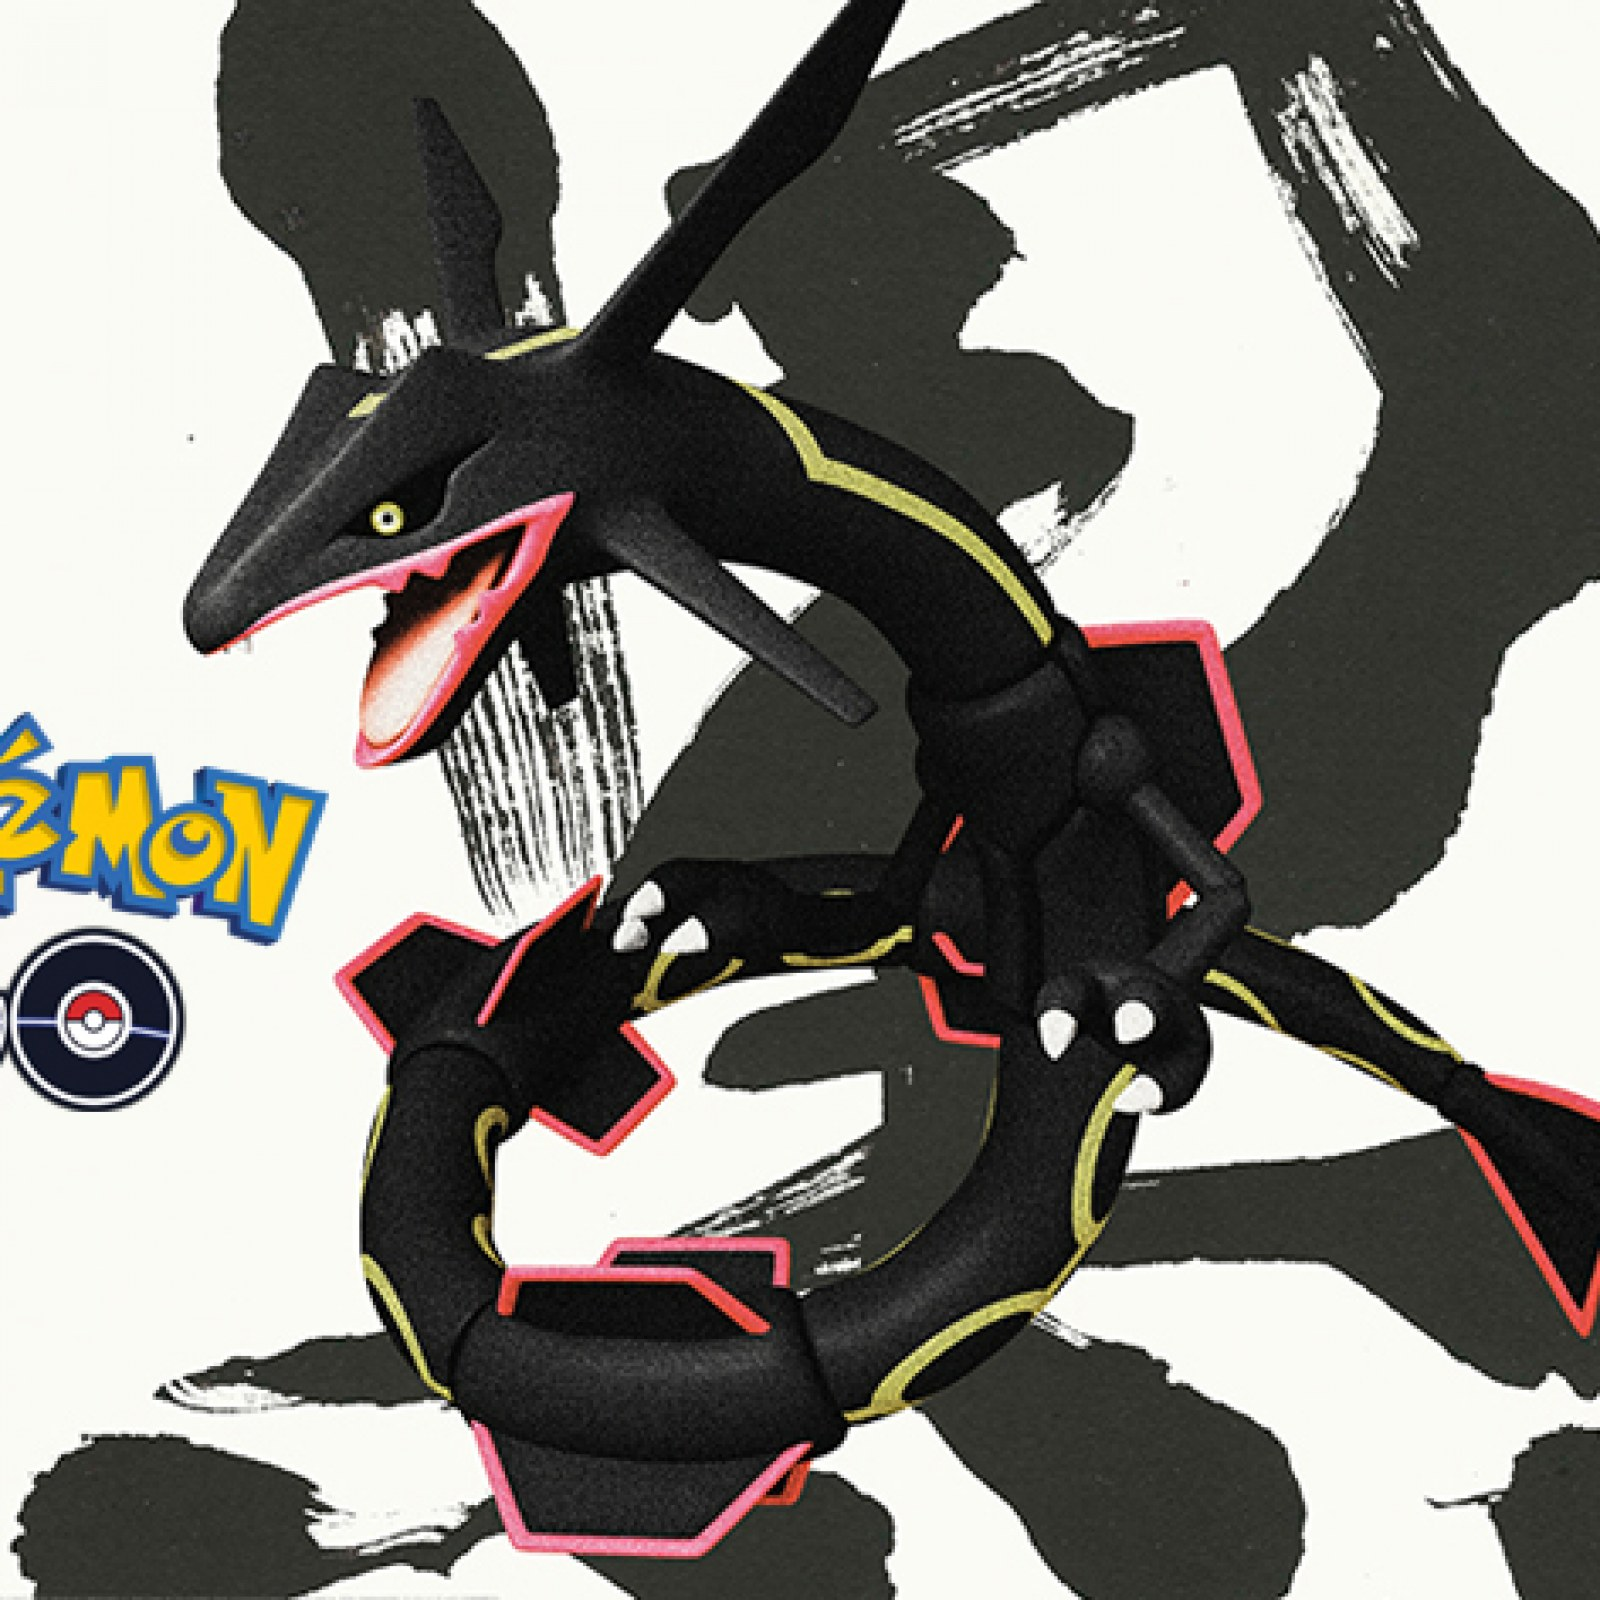 Pokémon Go' Shiny Rayquaza Raid Event: Start Time and Best